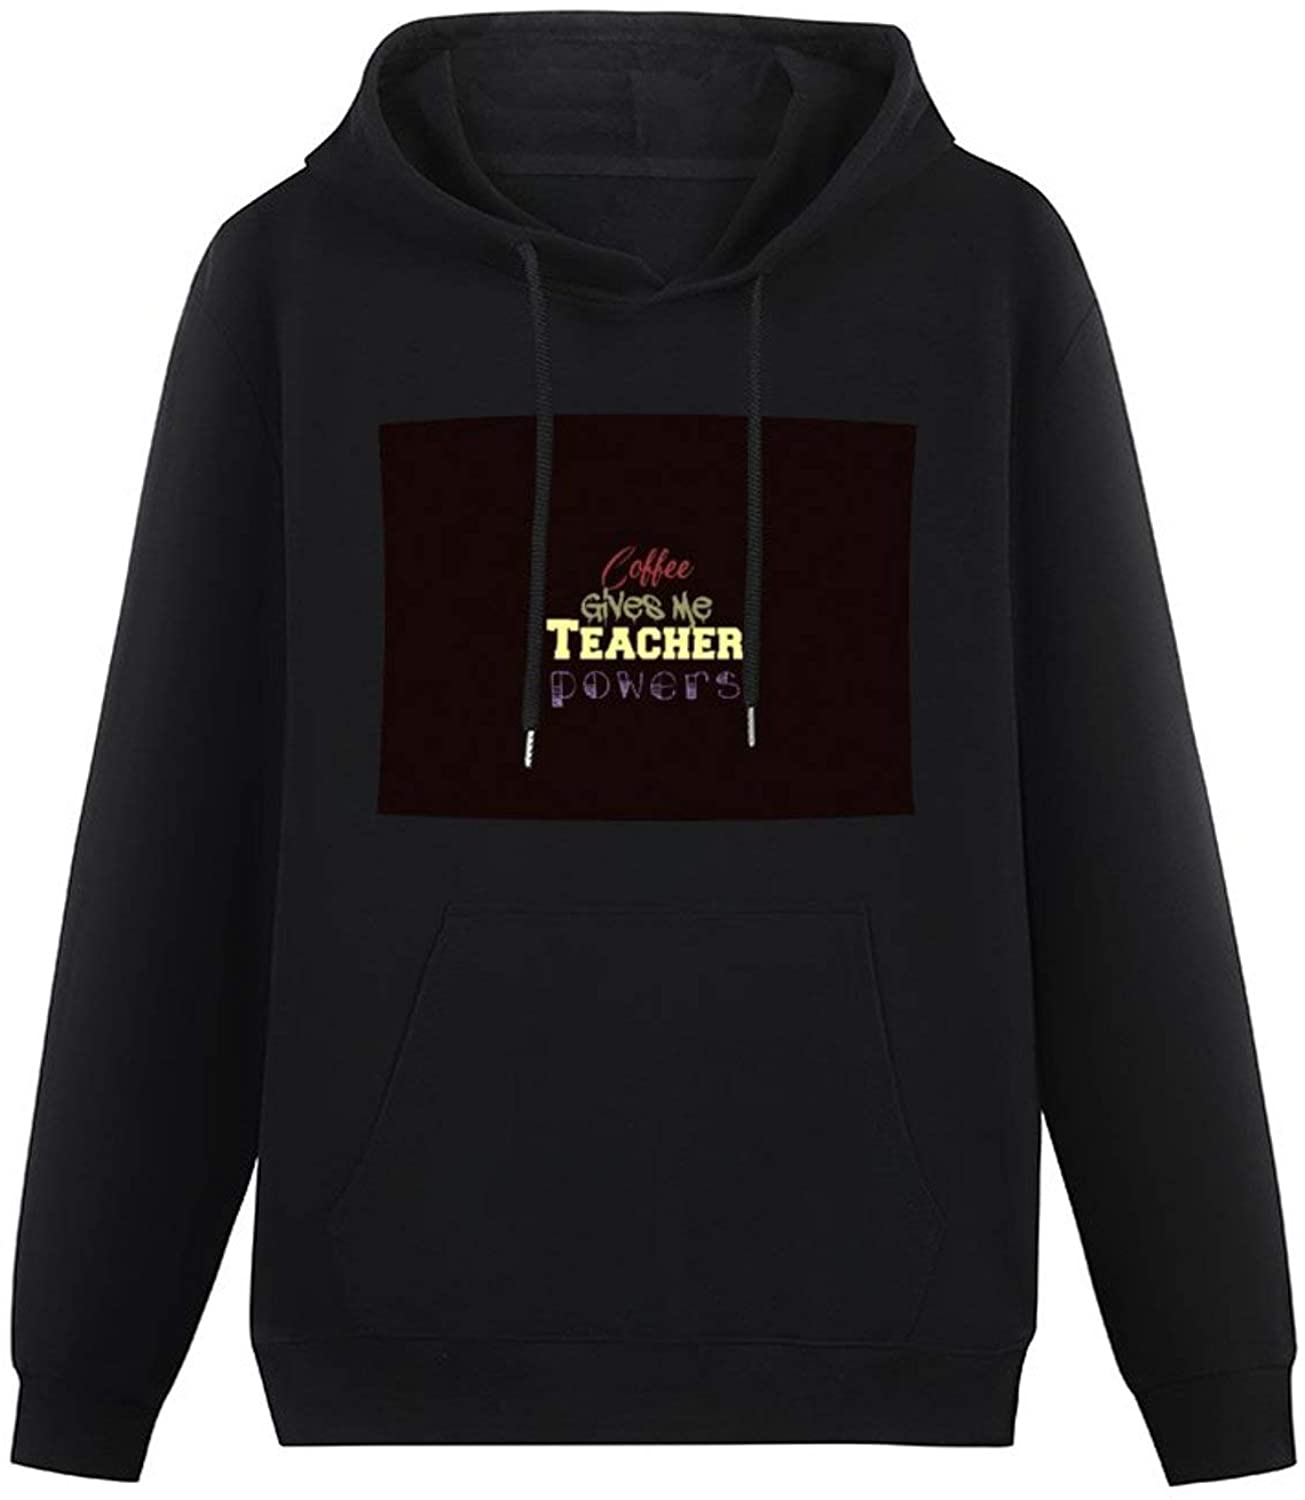 zhongmin Coffee Gives Me Teacher Powers Jigsaw Puzzle Hoodie Men's Teen Hood Pullover Comfy Big Front Pocket